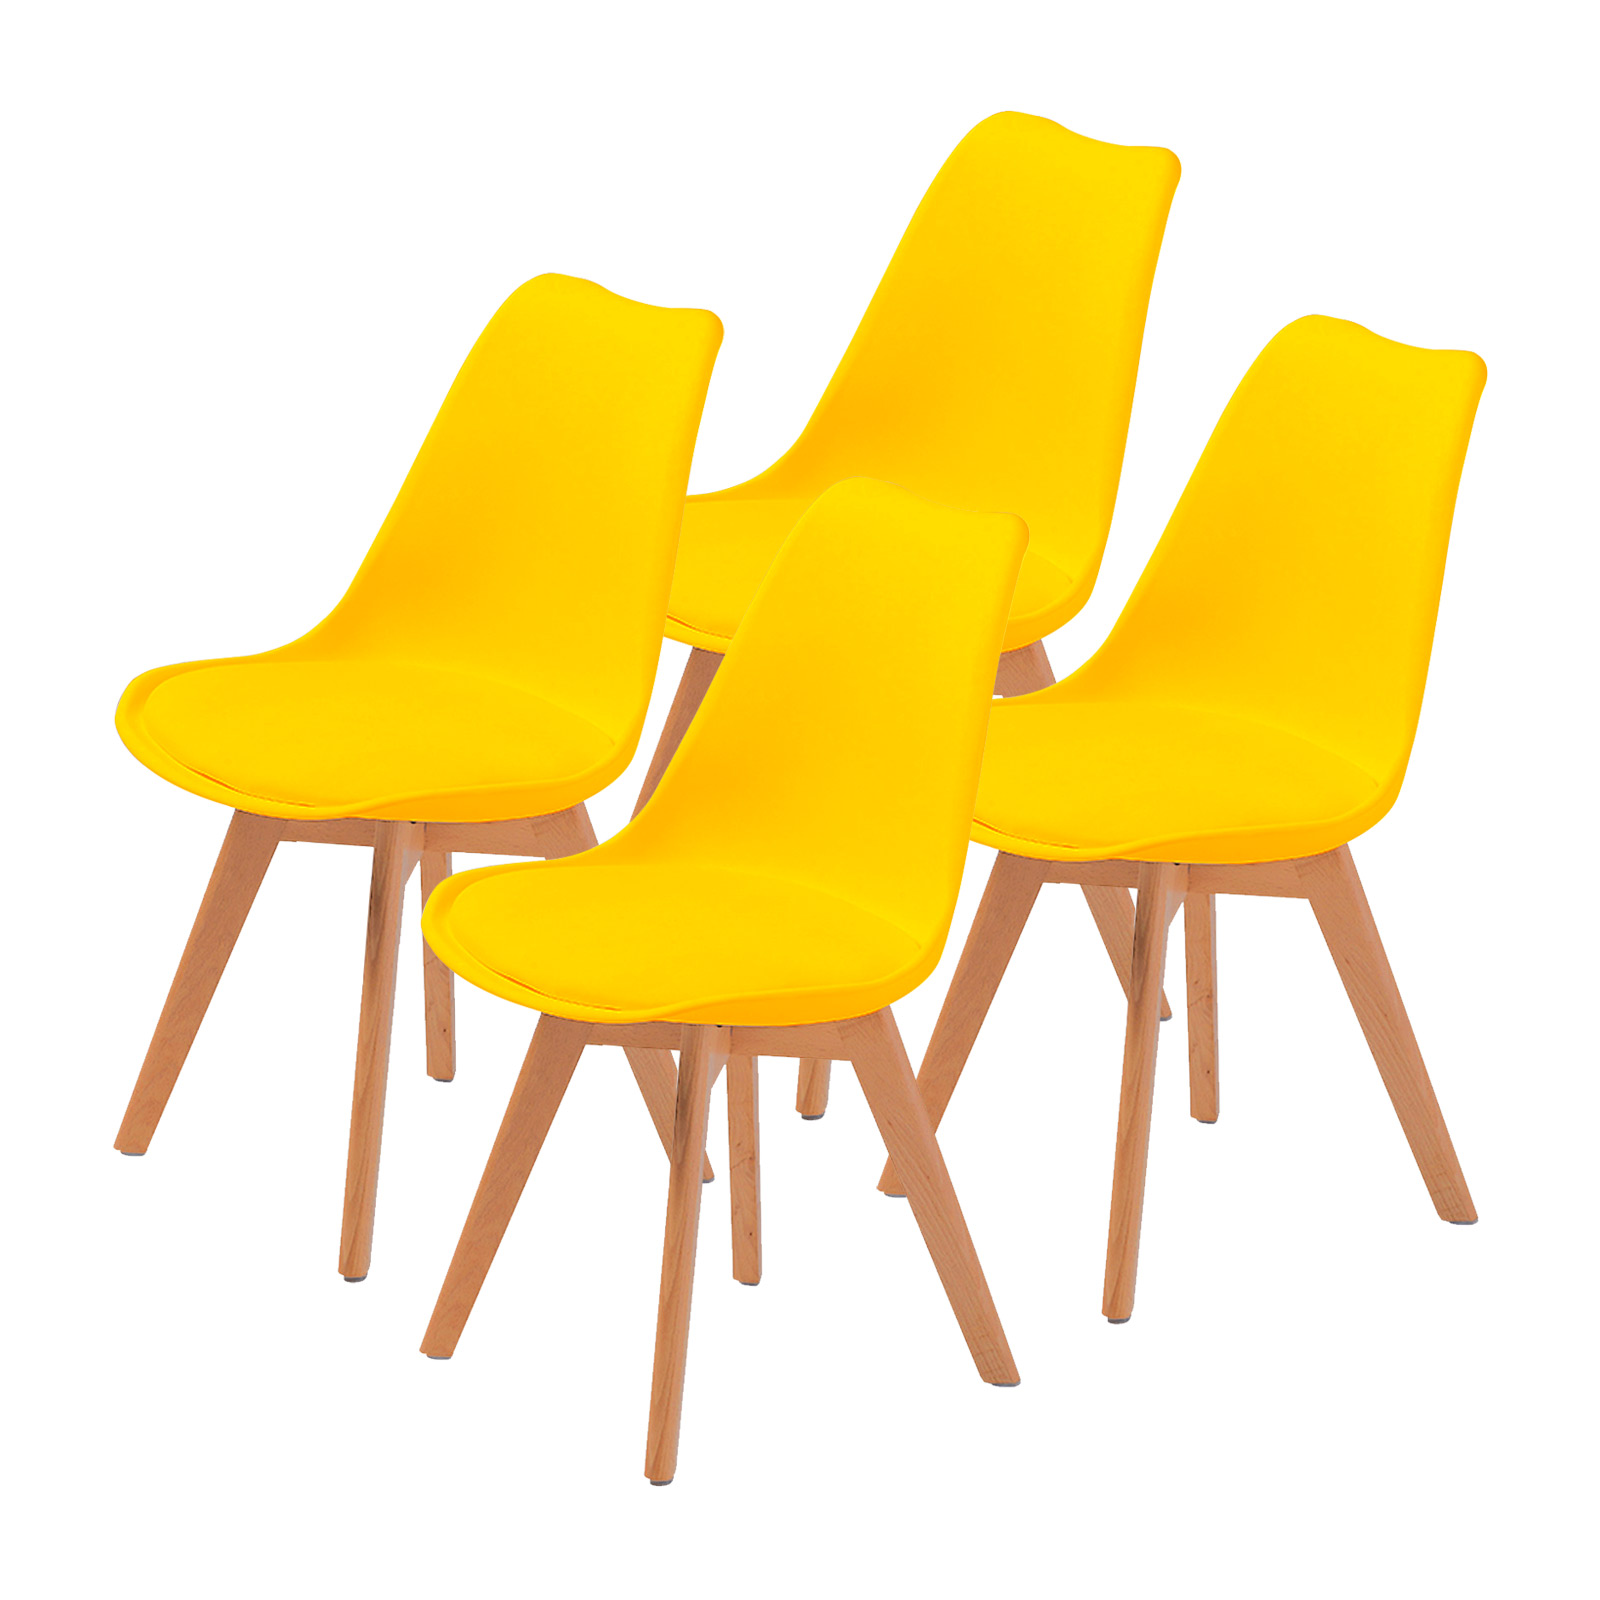 4X Padded Seat Dining Chair - YELLOW